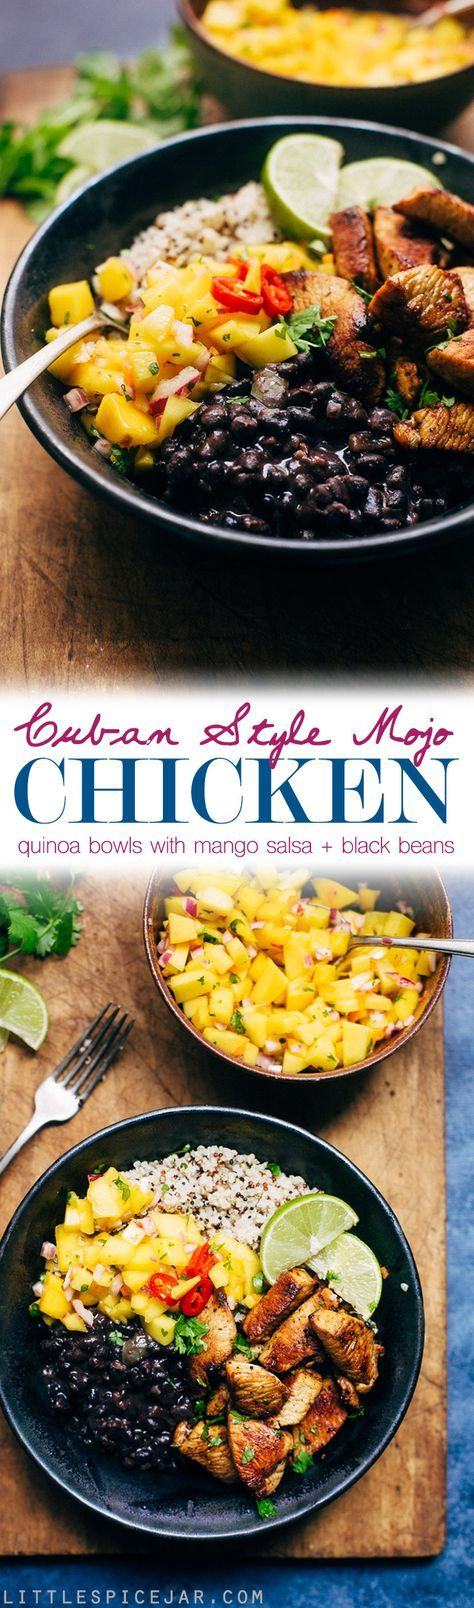 Cuban Mojo Chicken Quinoa Bowls with Mango Salsa and Black Beans - These bowls are bright and flavorful! The perfect quick meal to prep and enjoy all week long! The flavors just get better with time! #cubanchicken #mojochicken #chickenquinoabowls #quinoa | Littlespicejar.com